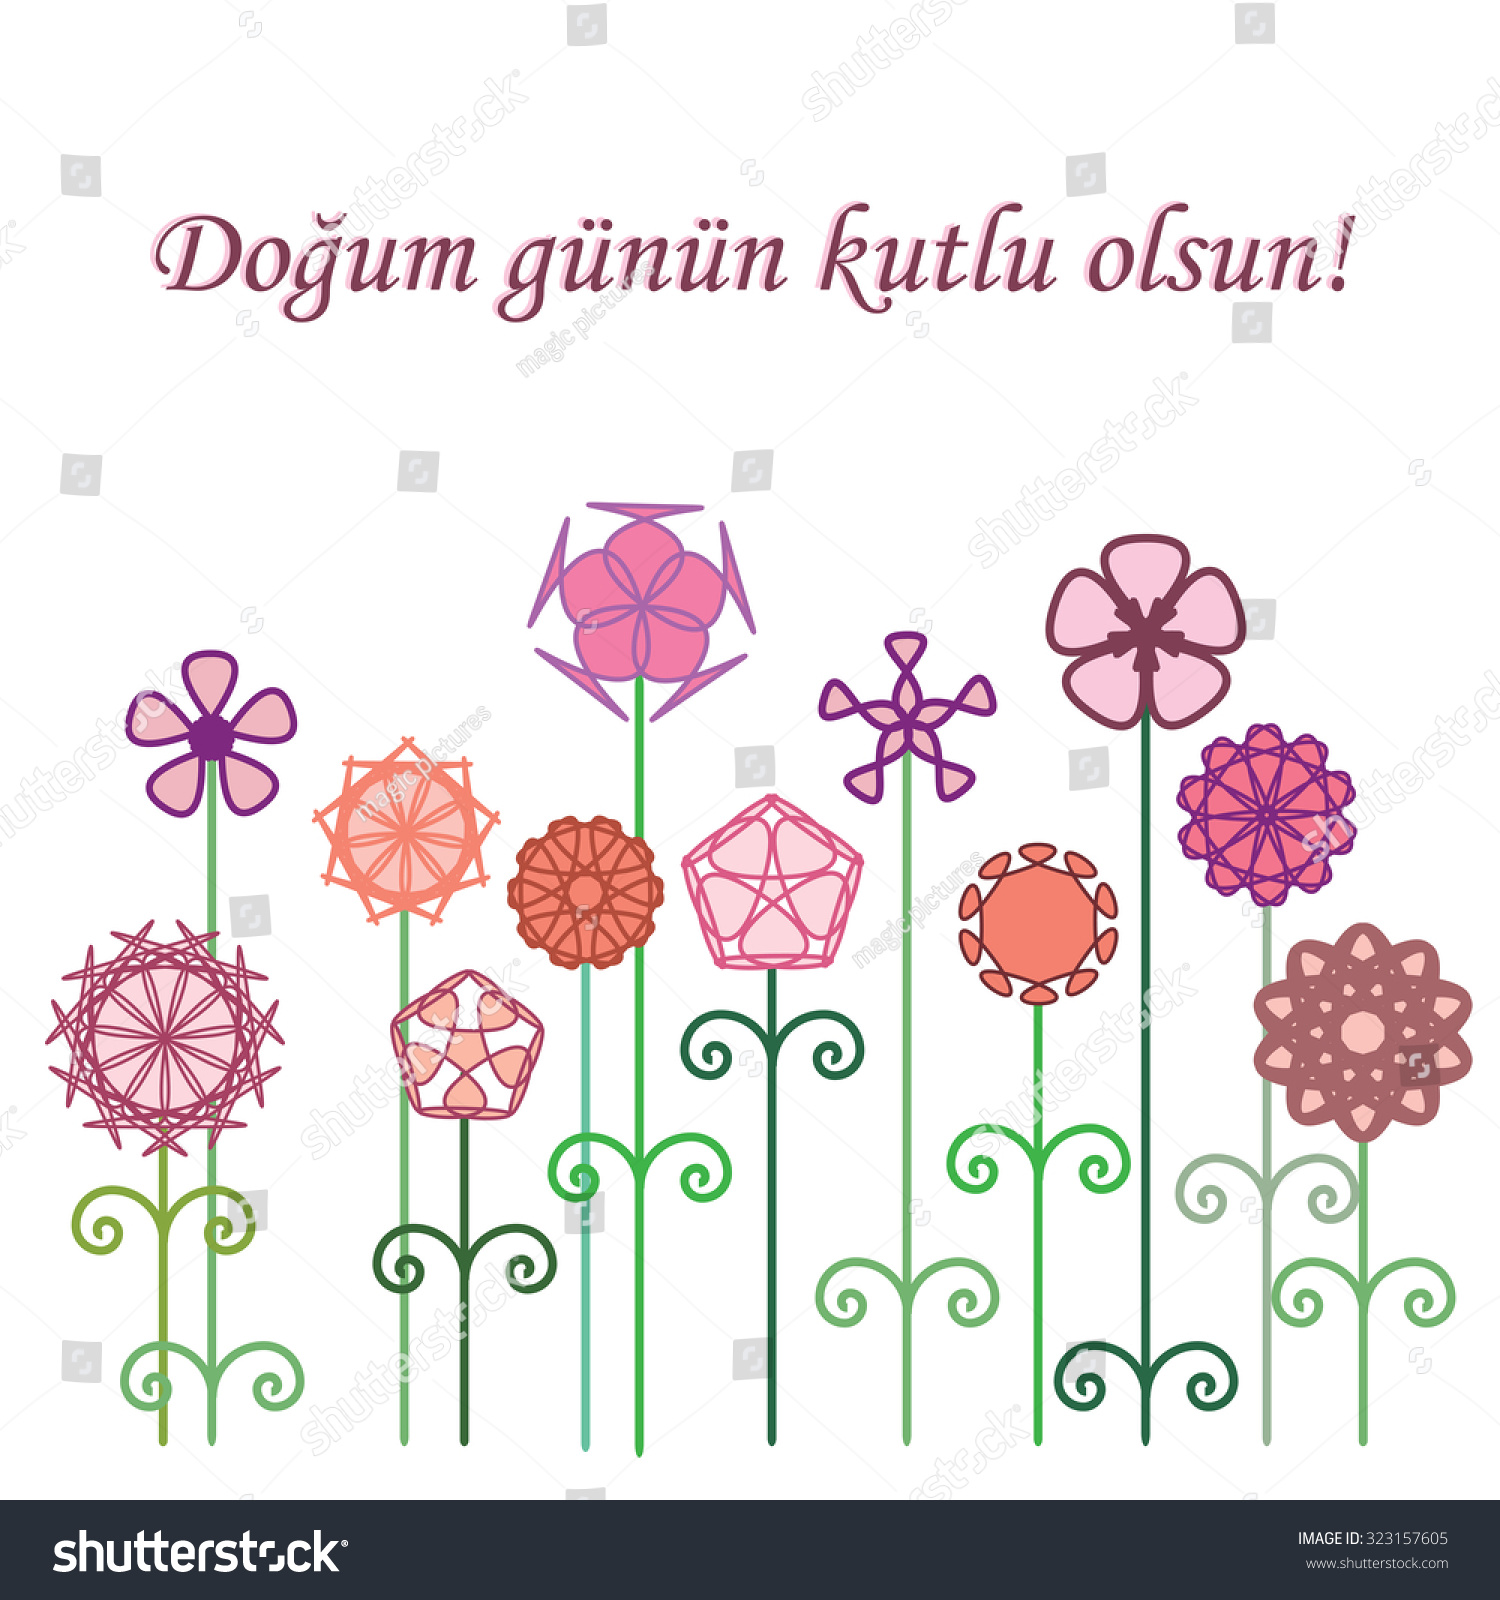 Dogum Gunun Kutlu Olsun Turkish Translation Stock Vector (Royalty